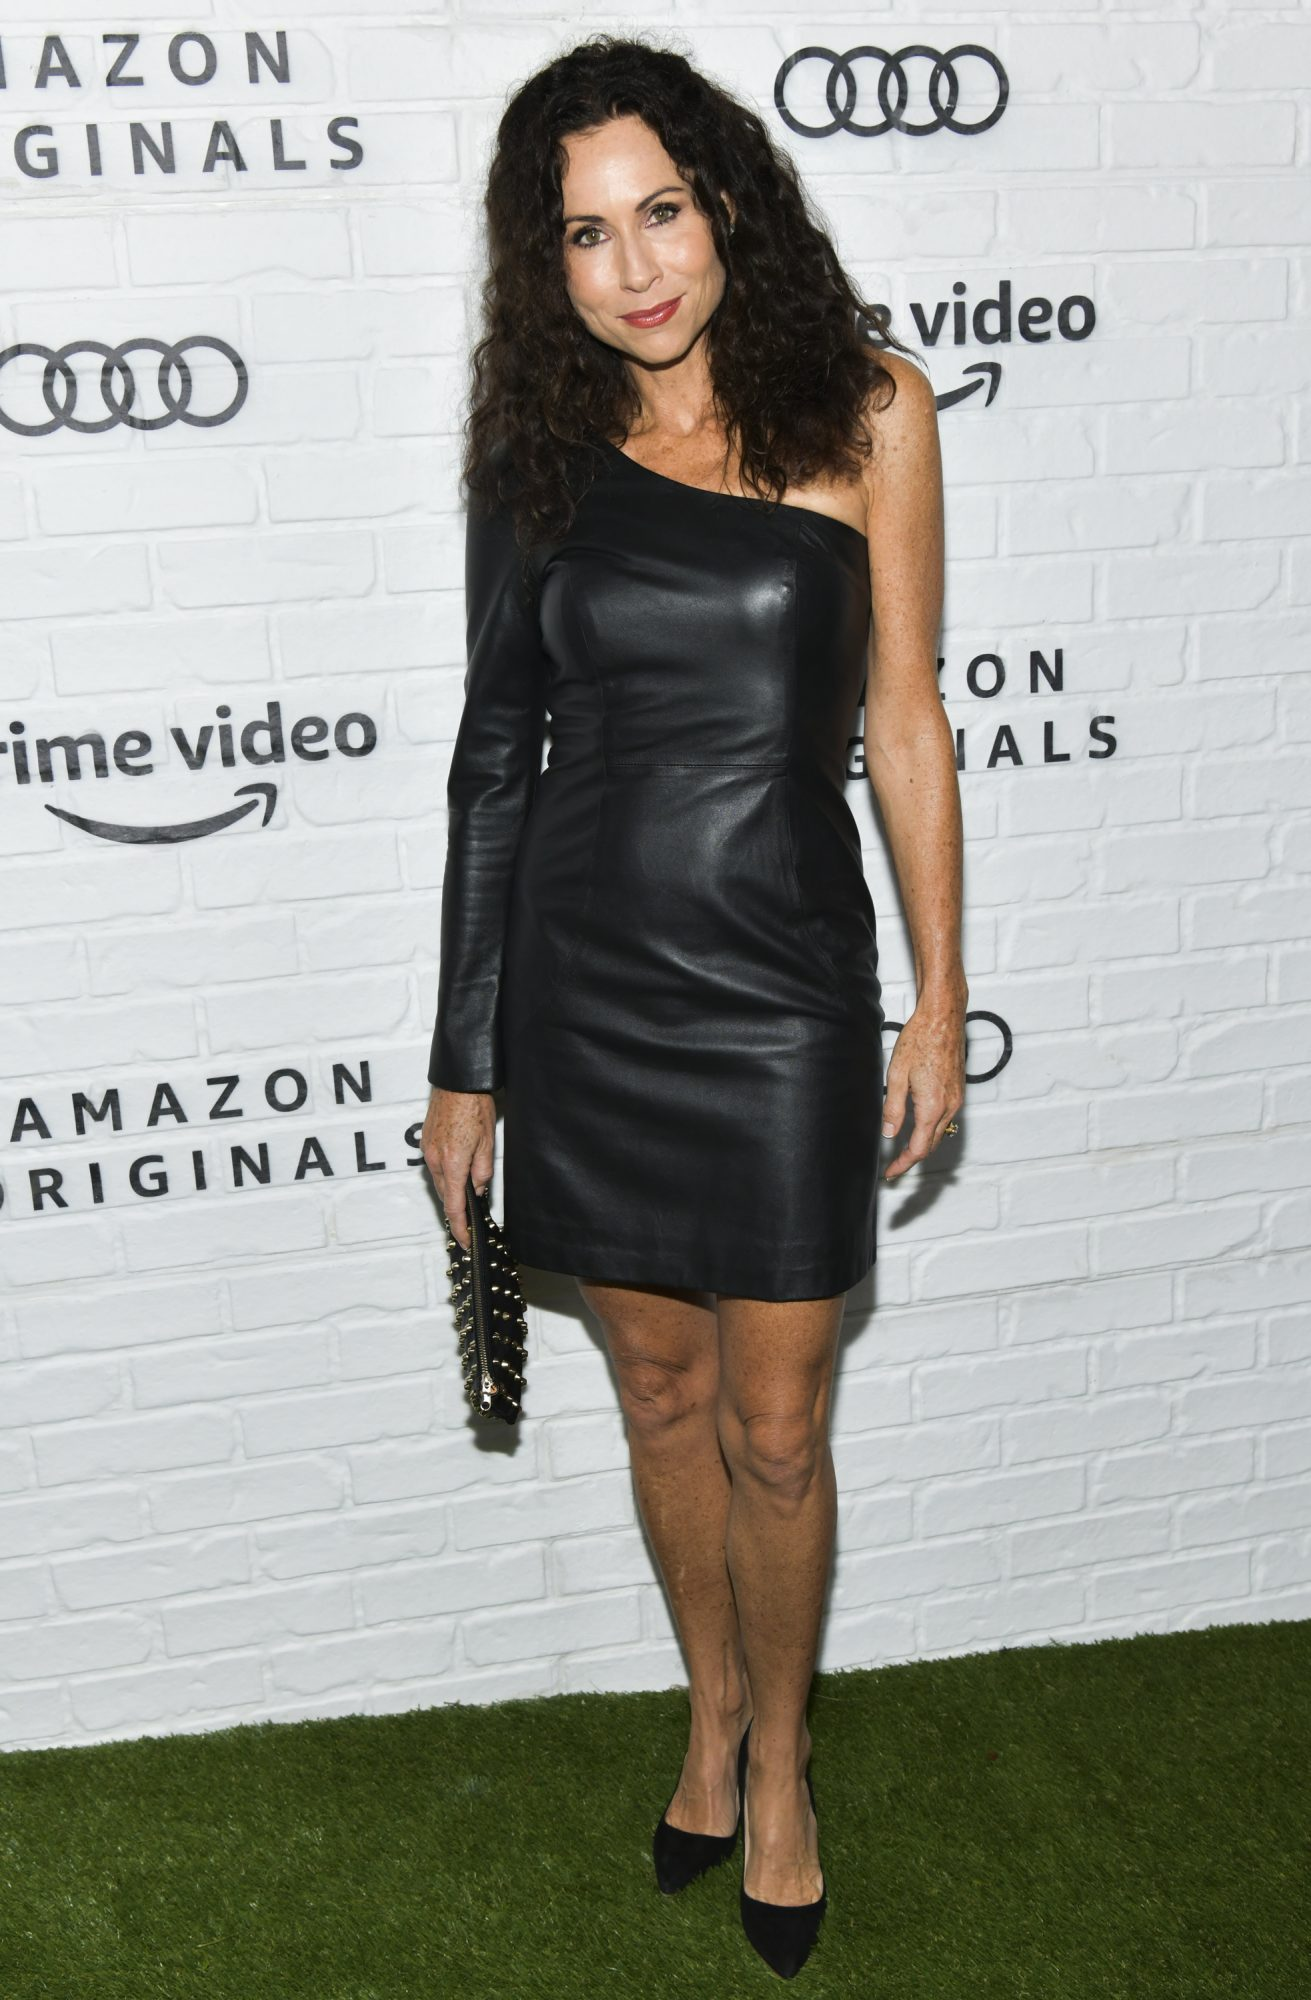 Emmys After-Party - Minnie Driver